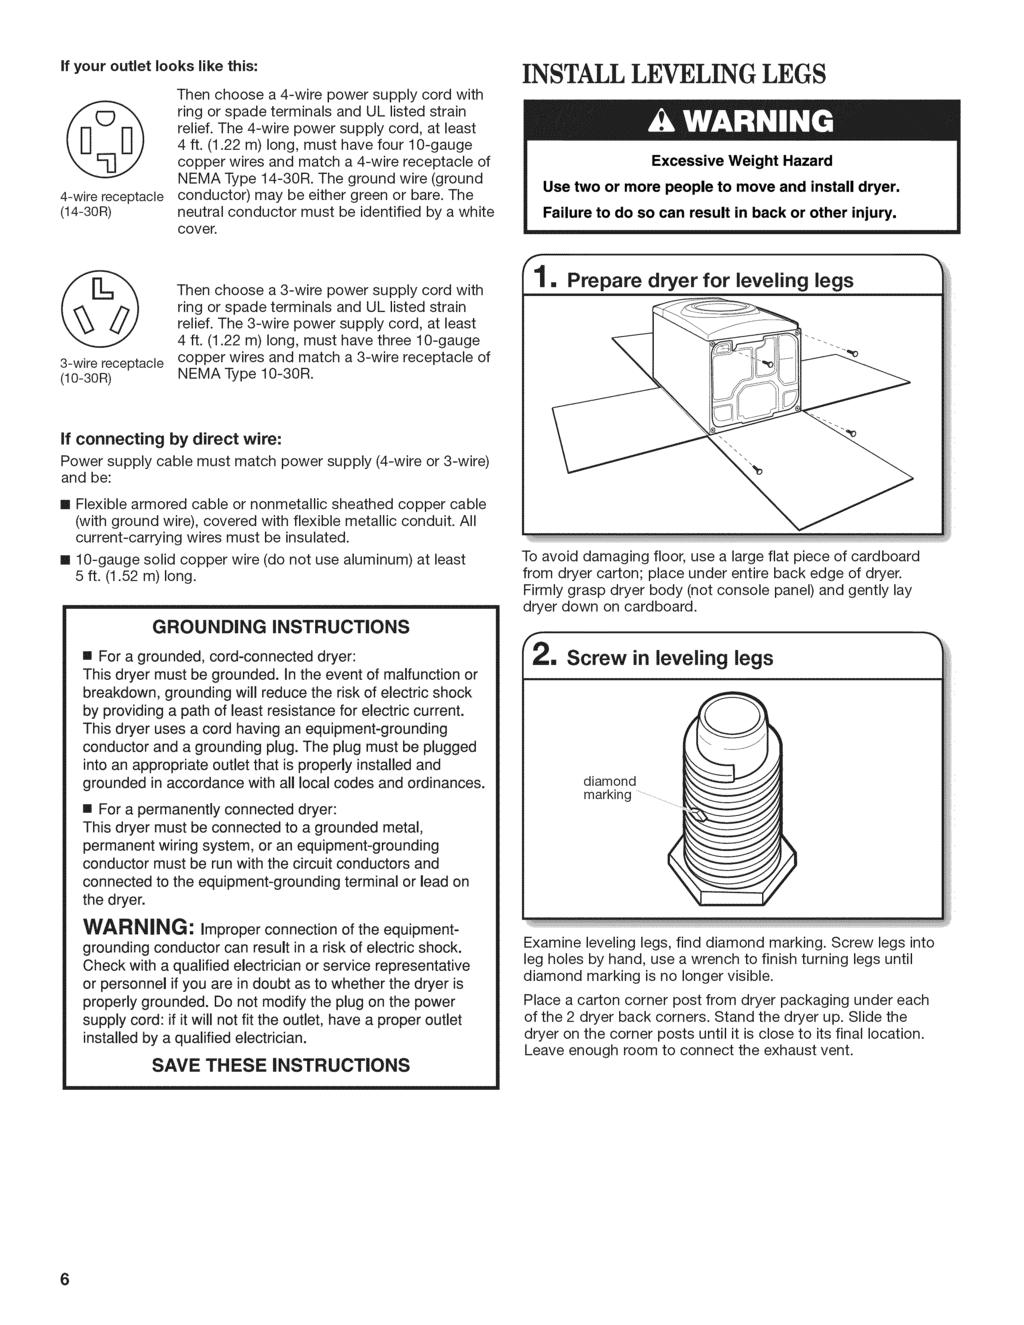 Electric Dryer Installation Instructions Pdf Schematic Wiring Diagram Fuse Screw If Your Outlet Looks Like This 4 Wire Receptacle 14 30r